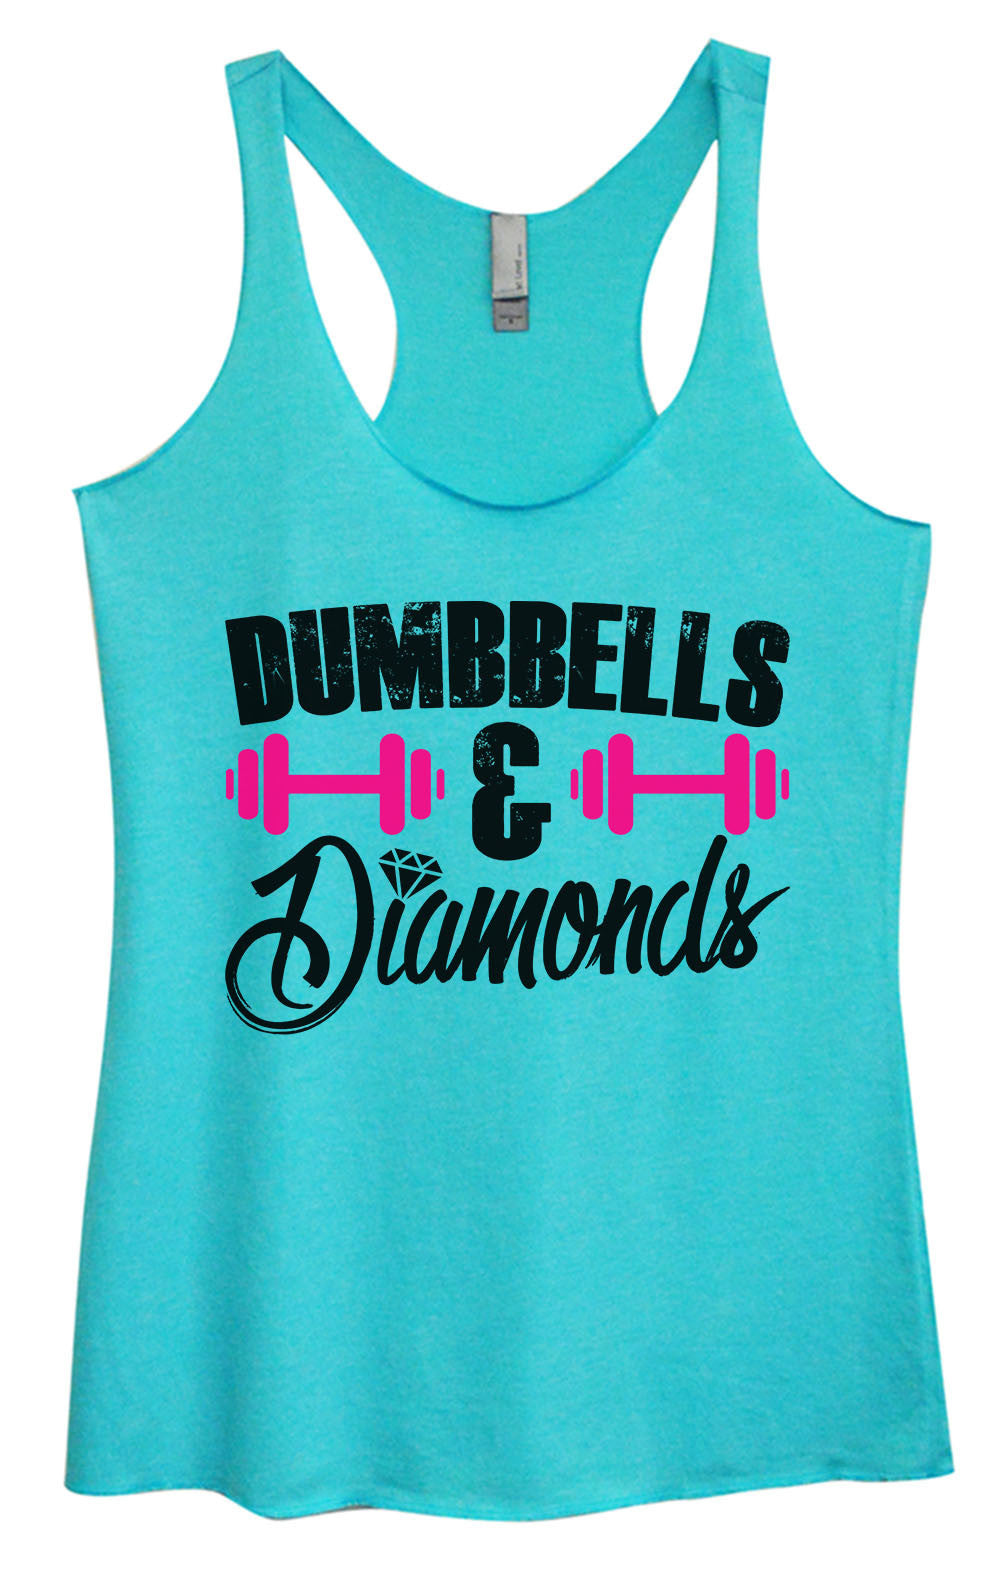 Womens Fashion Triblend Tank Top - Dumbbells & Diamonds - Tri-1416 - Funny Shirts Tank Tops Burnouts and Triblends  - 3